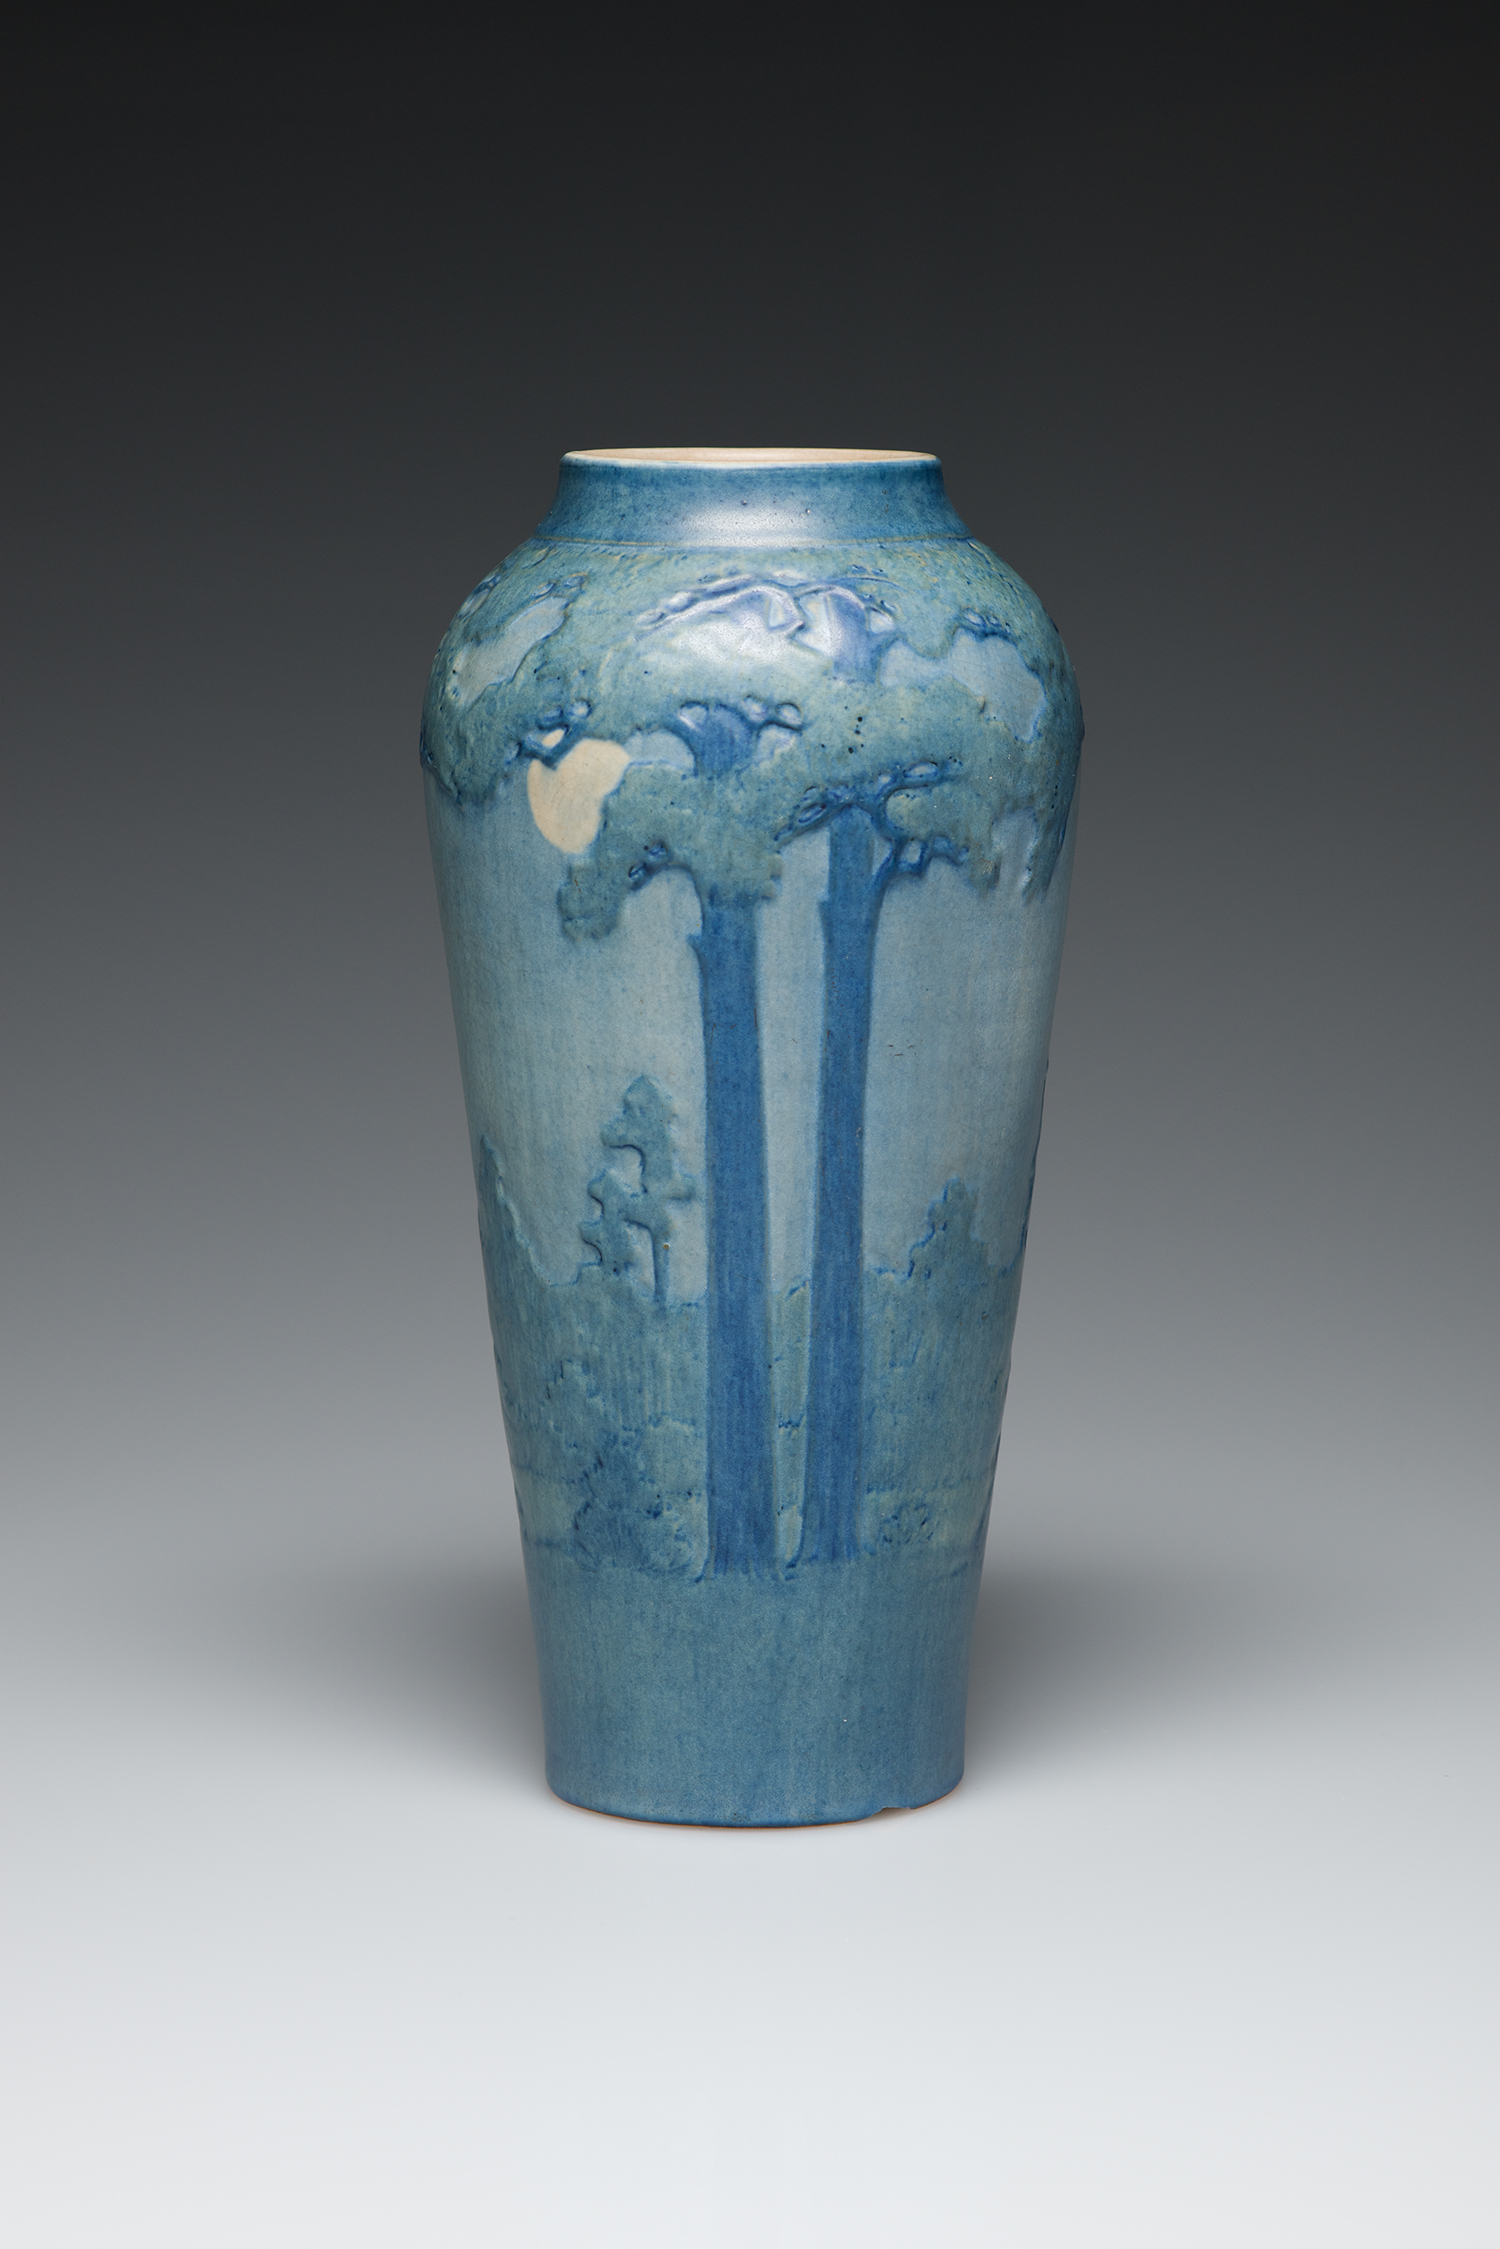 Vase, c. 1931. Low relief of stylized Pitcher plant.